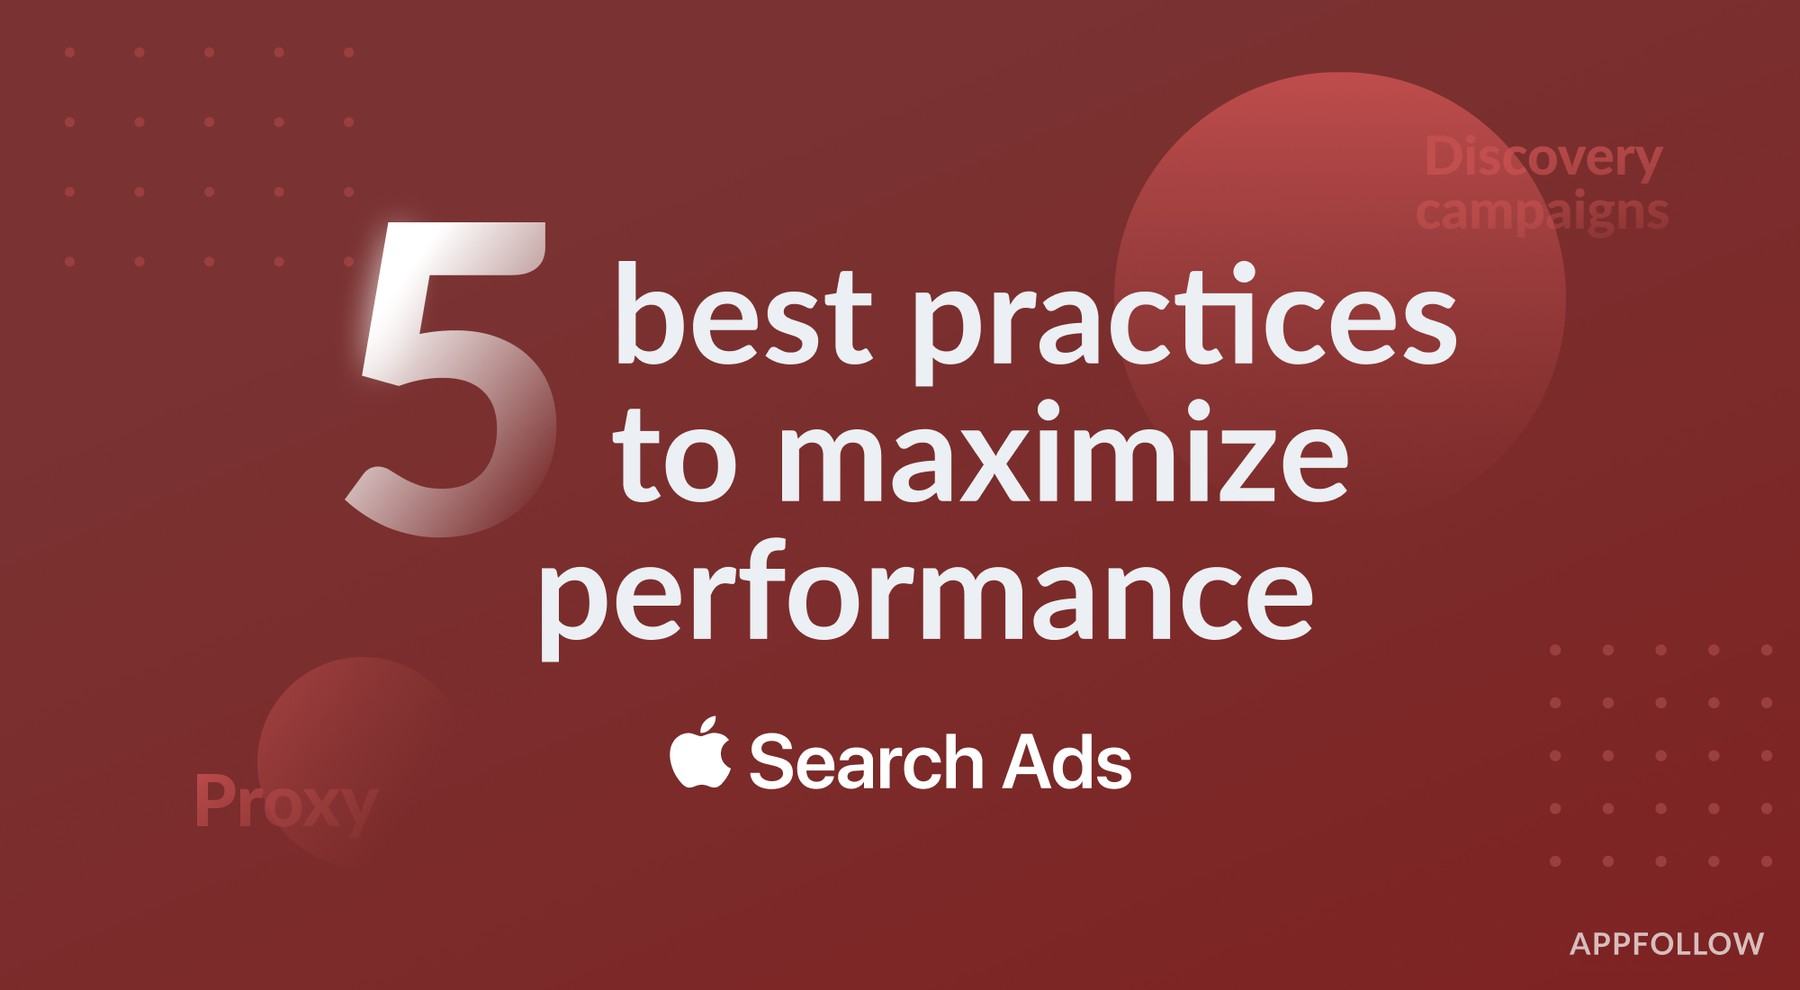 5 Apple Search Ads best practices to maximize performance